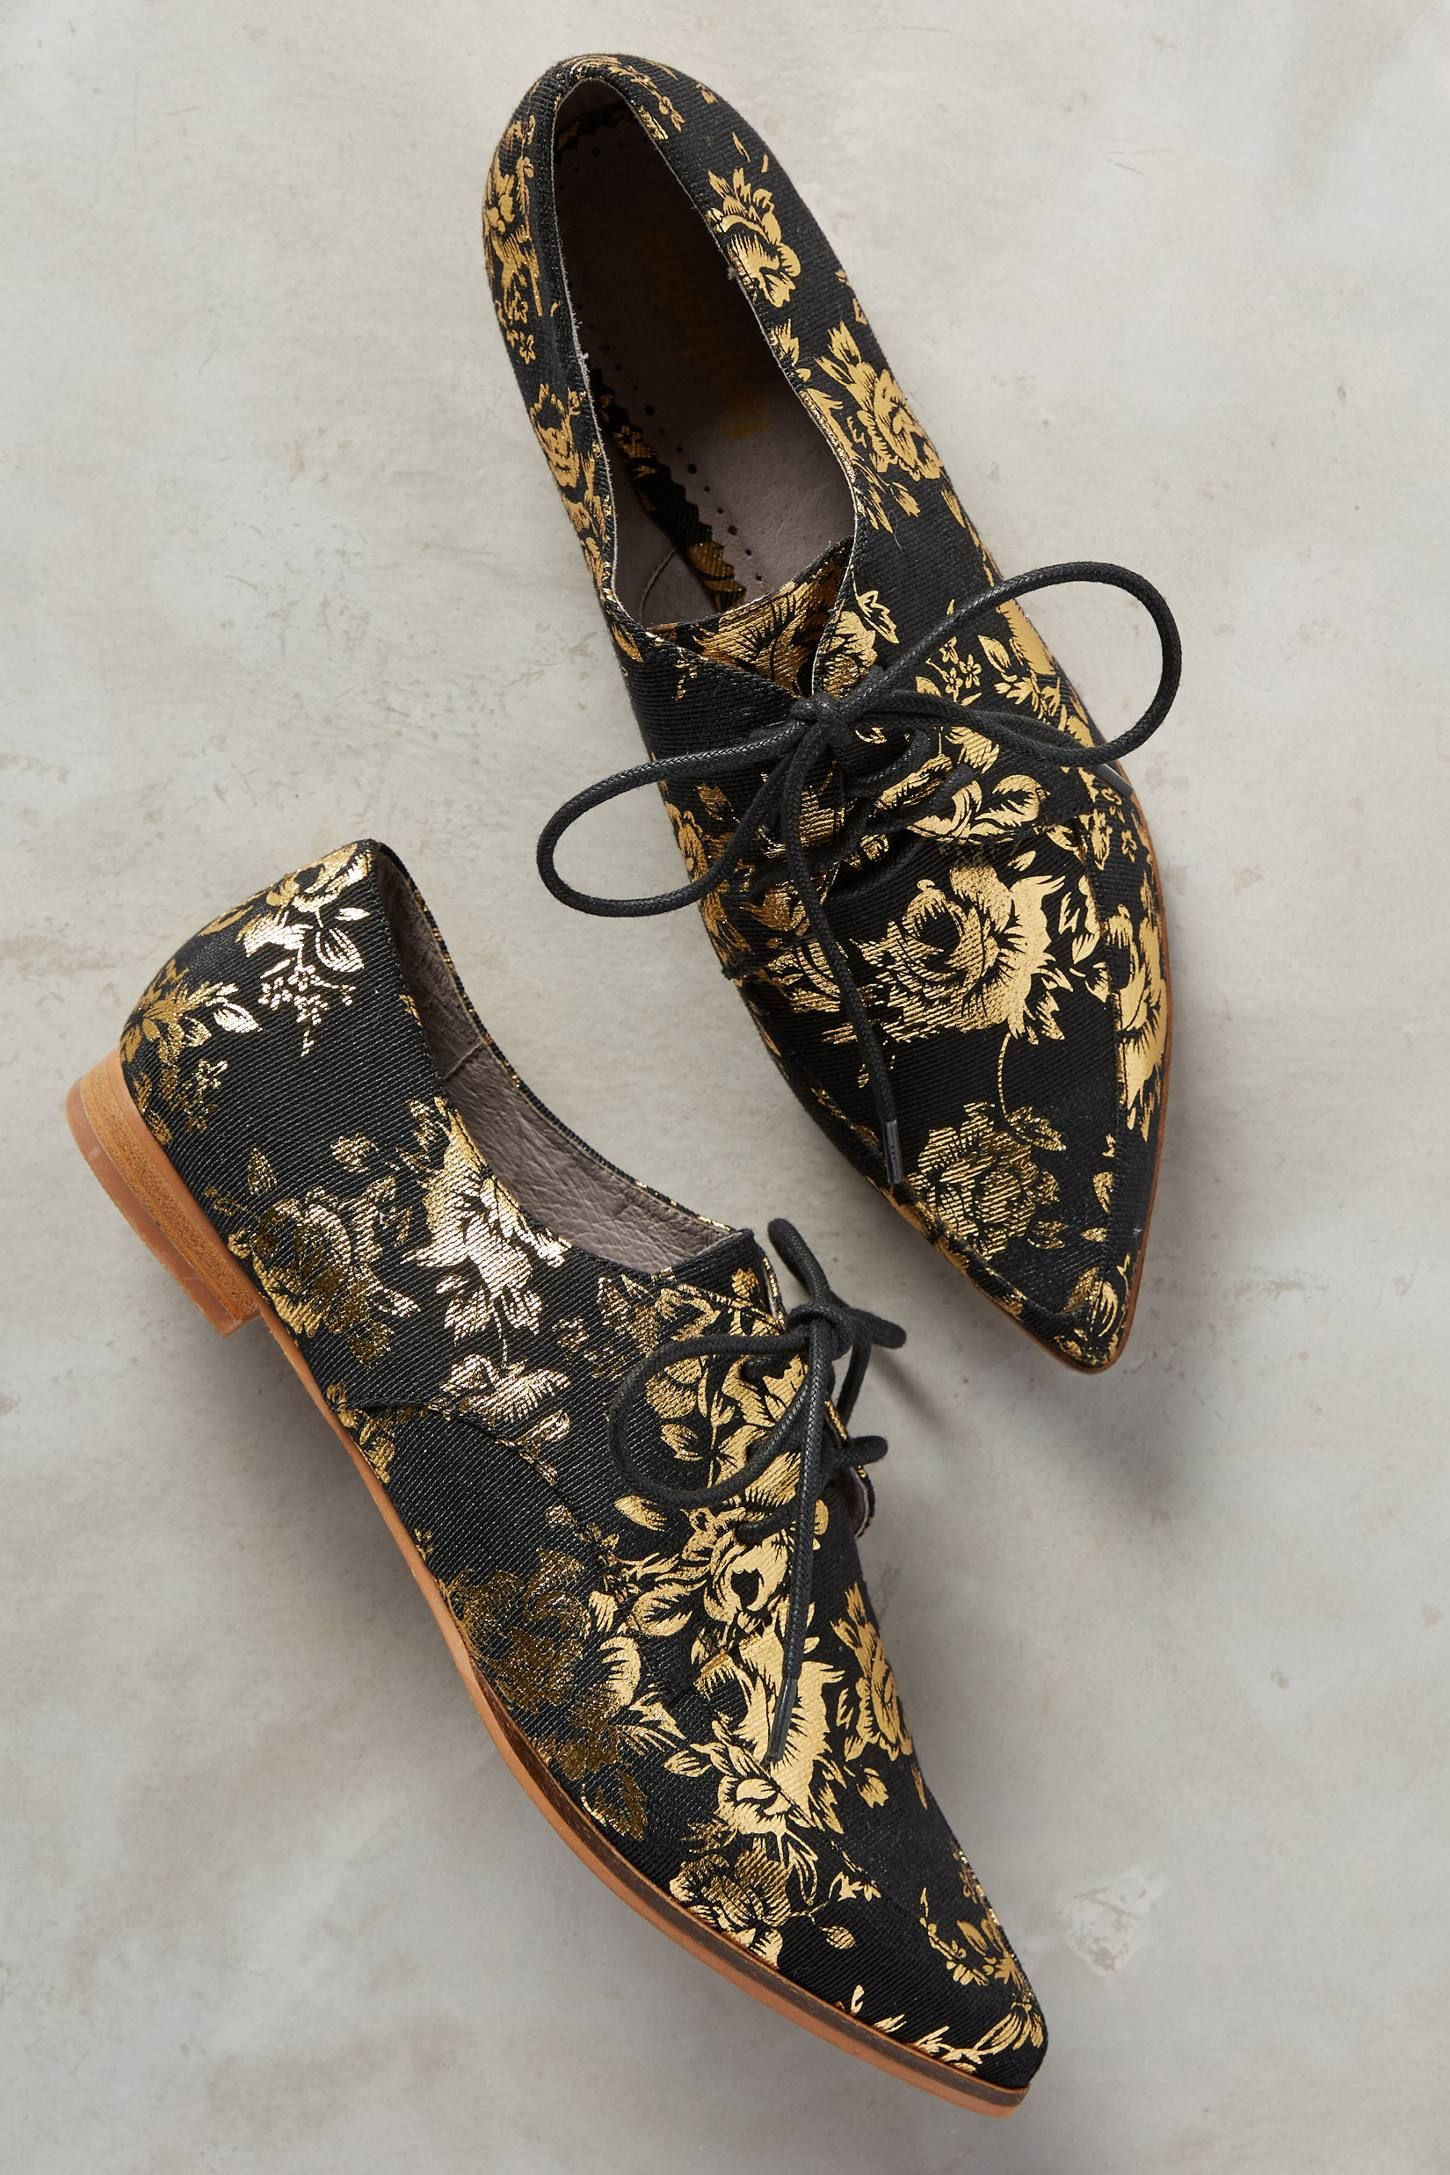 Farylrobin Gilded Rosebloom Oxfords - anthropologie.com